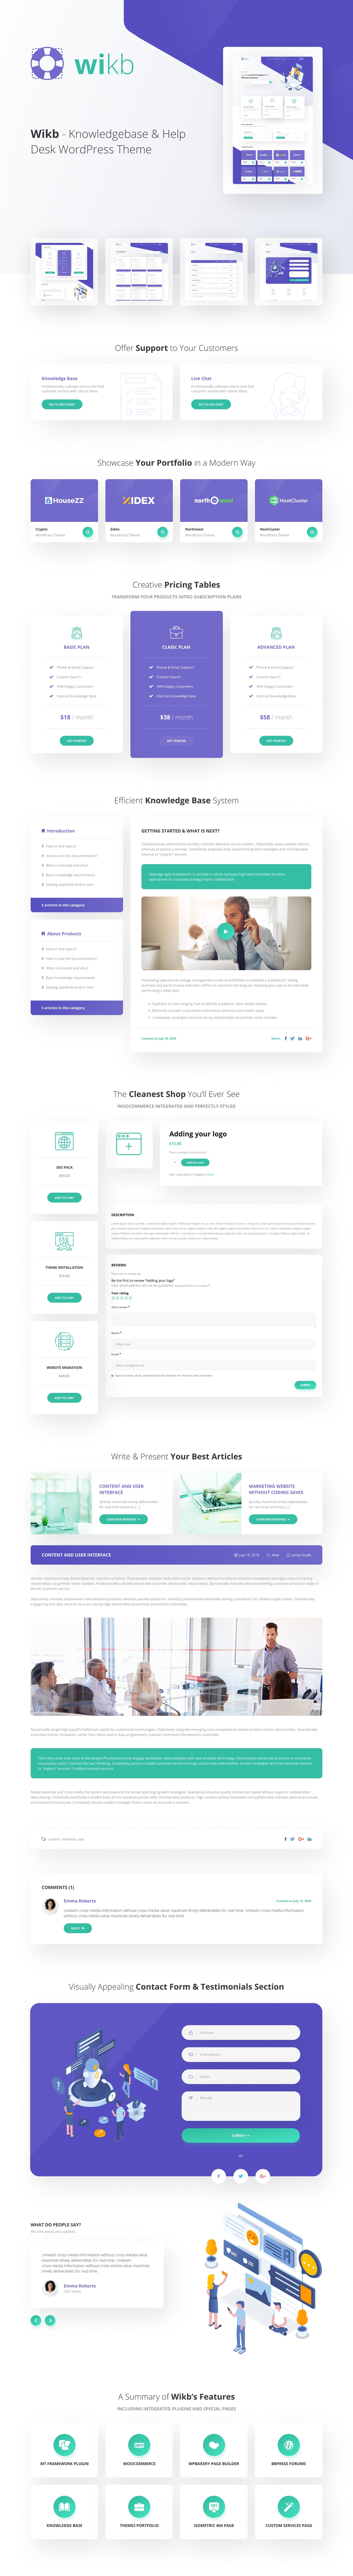 Wikb - Knowledgebase & Help Desk WP Theme - 2